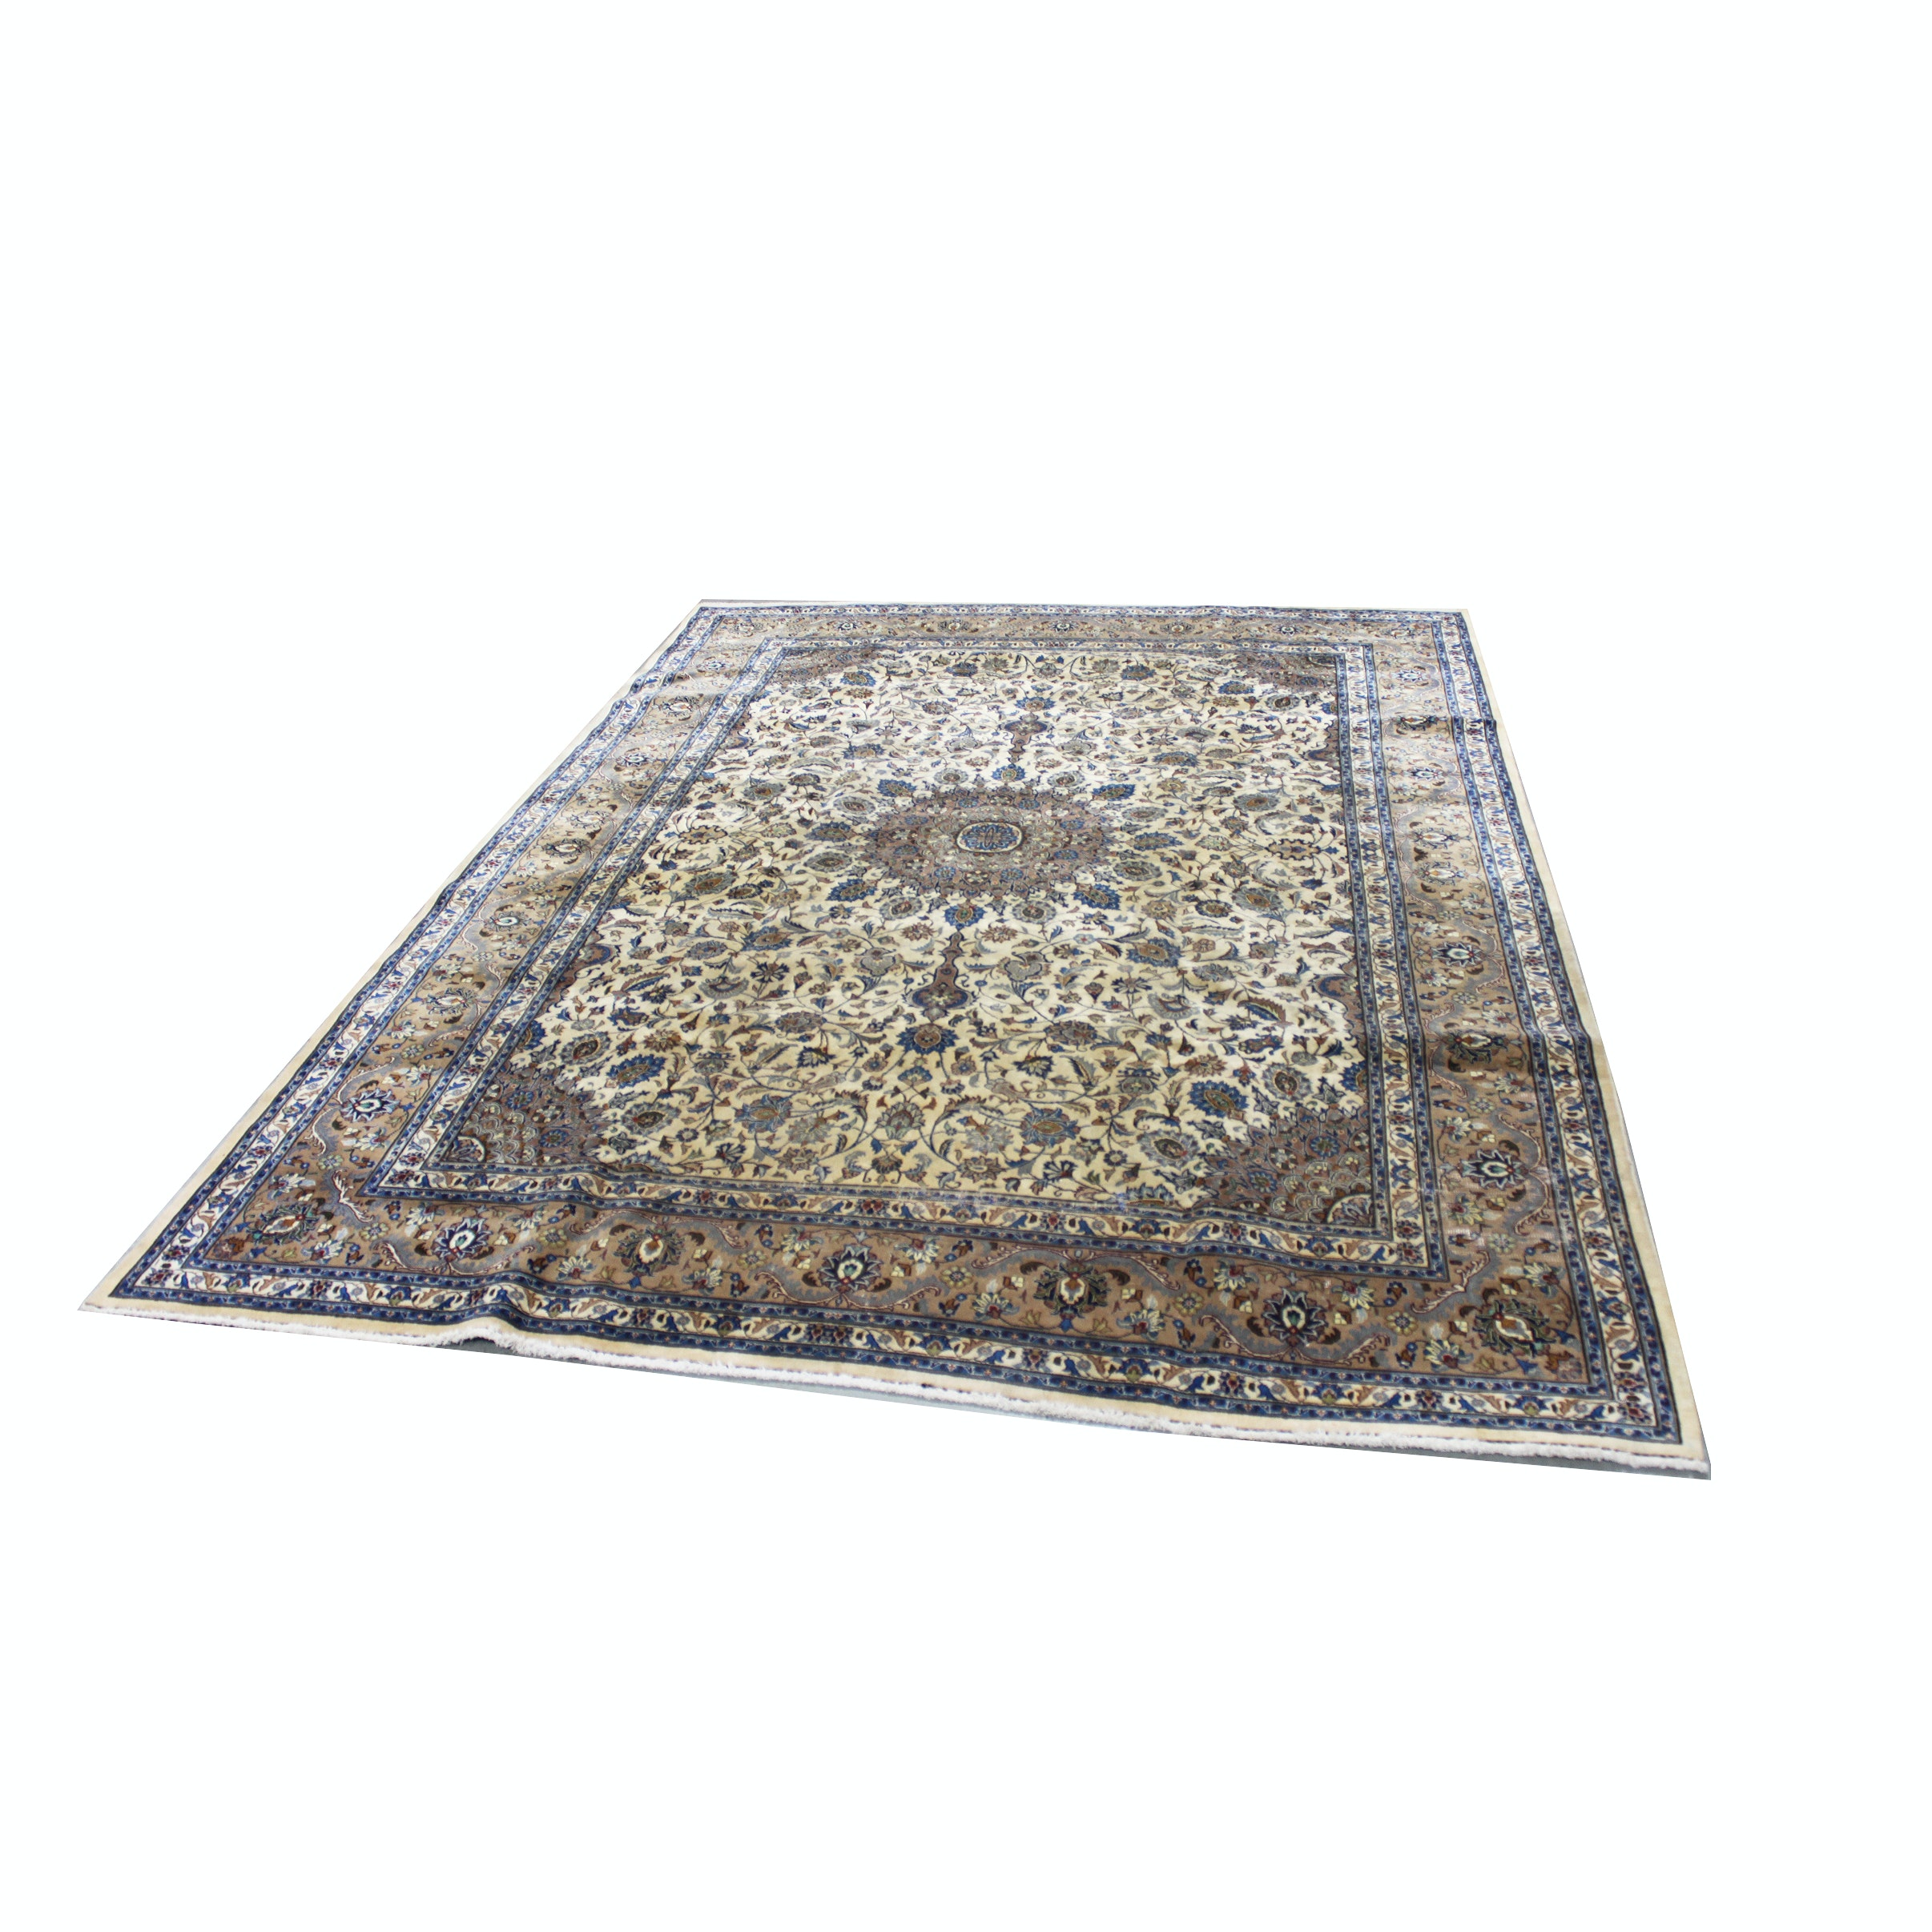 Large Hand-Knotted Persian Nain Area Rug